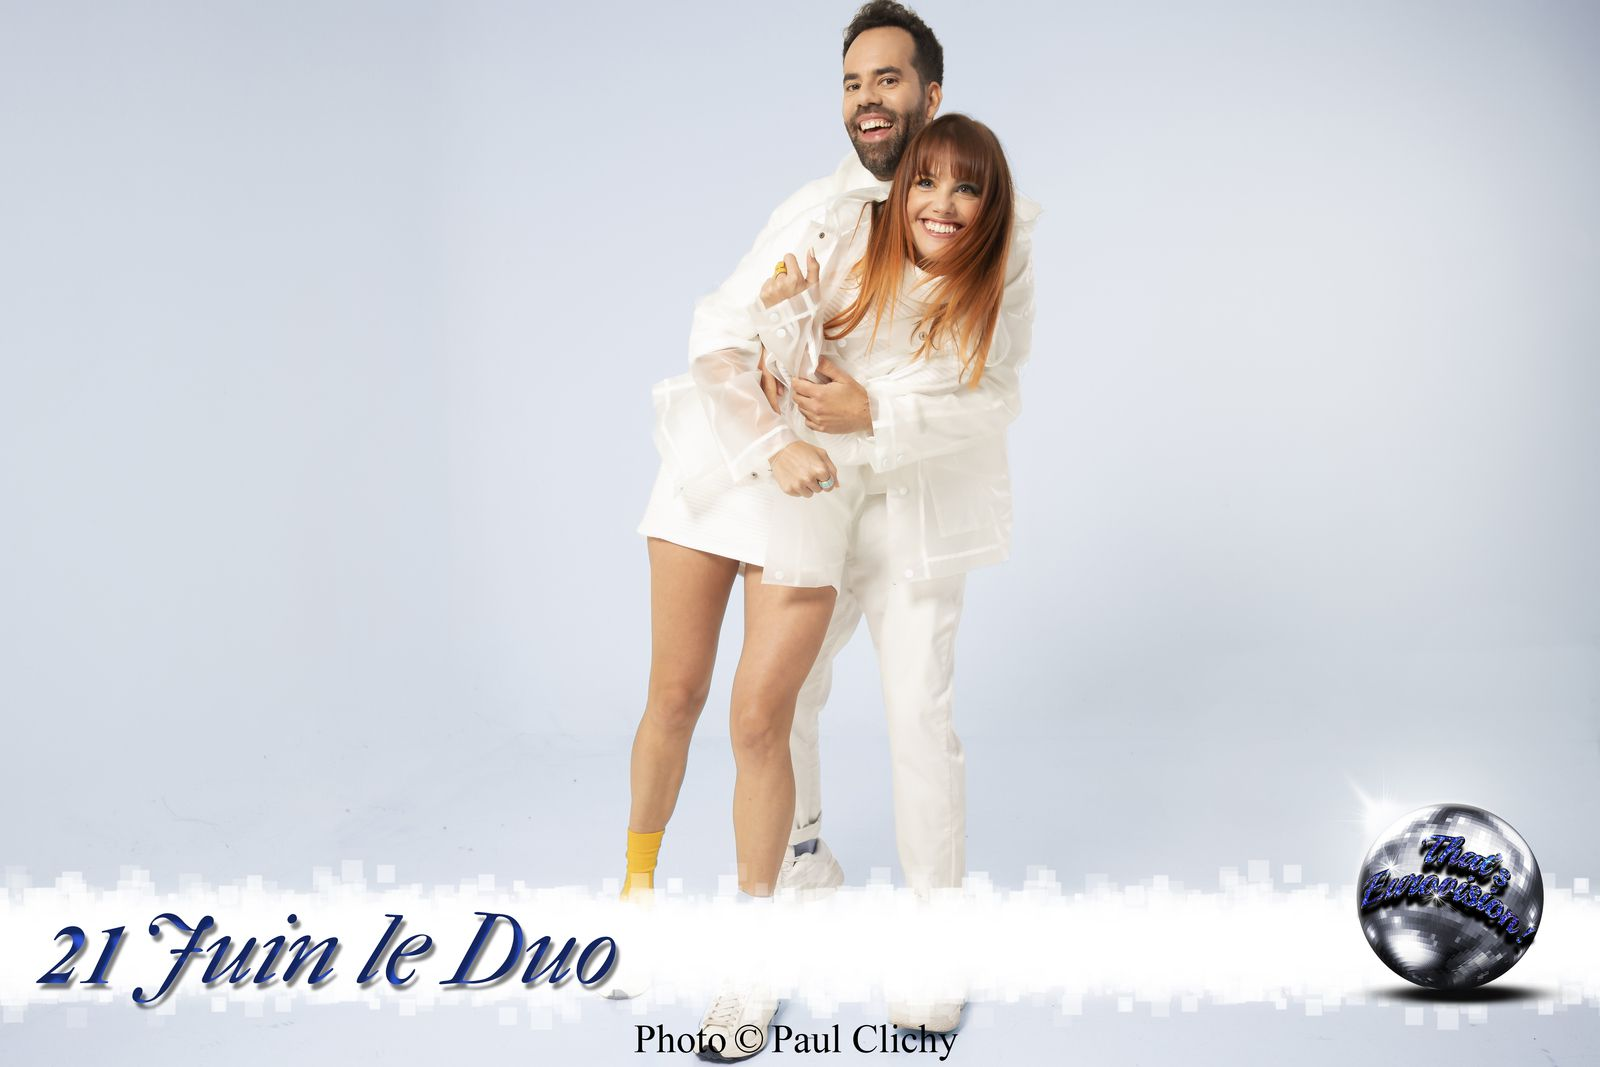 21 Juin Le Duo - This is the song we definetely want to defend in Eurovision!